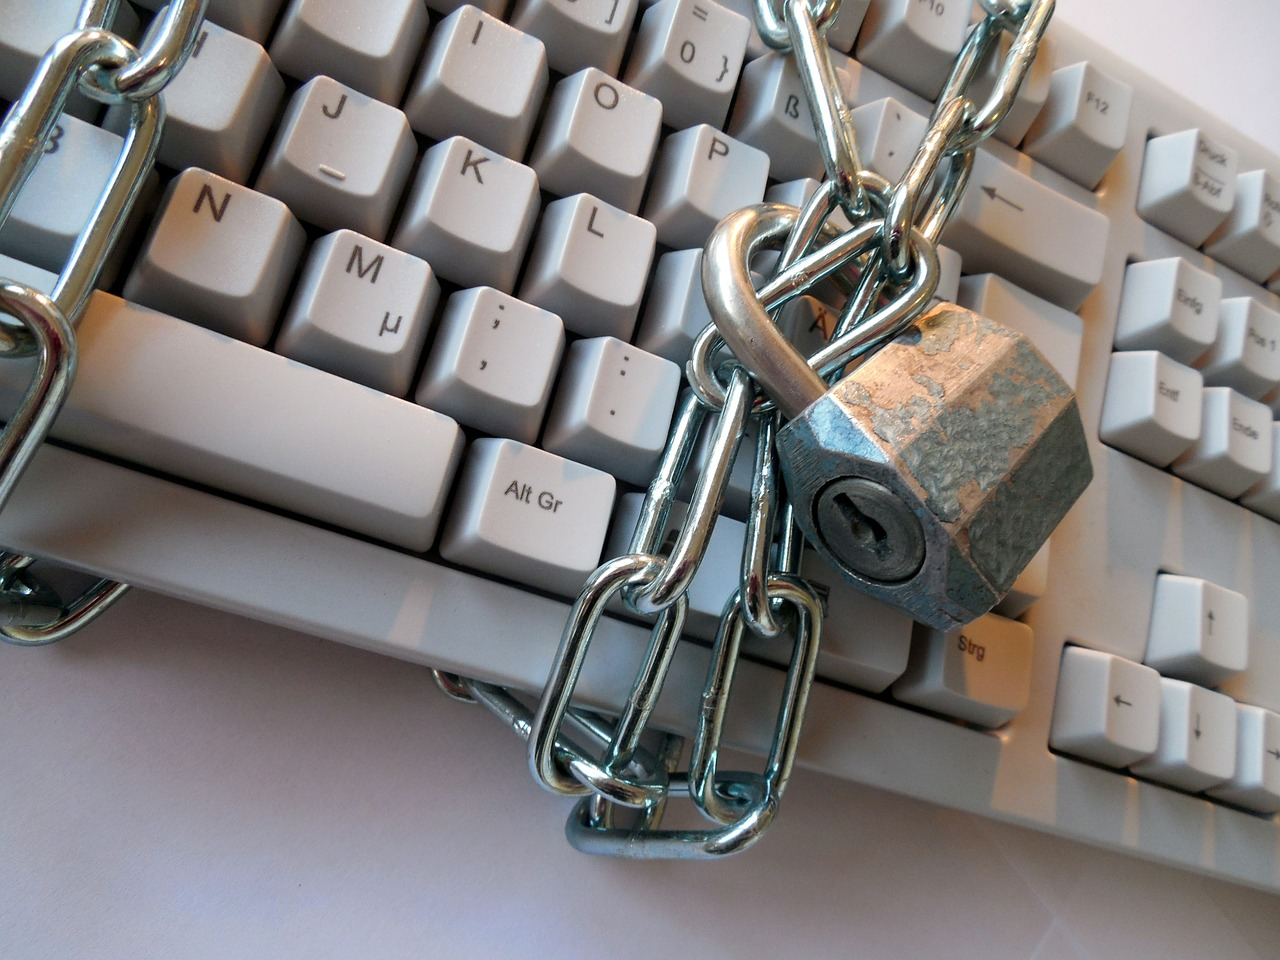 Keyboard with chain and padlock